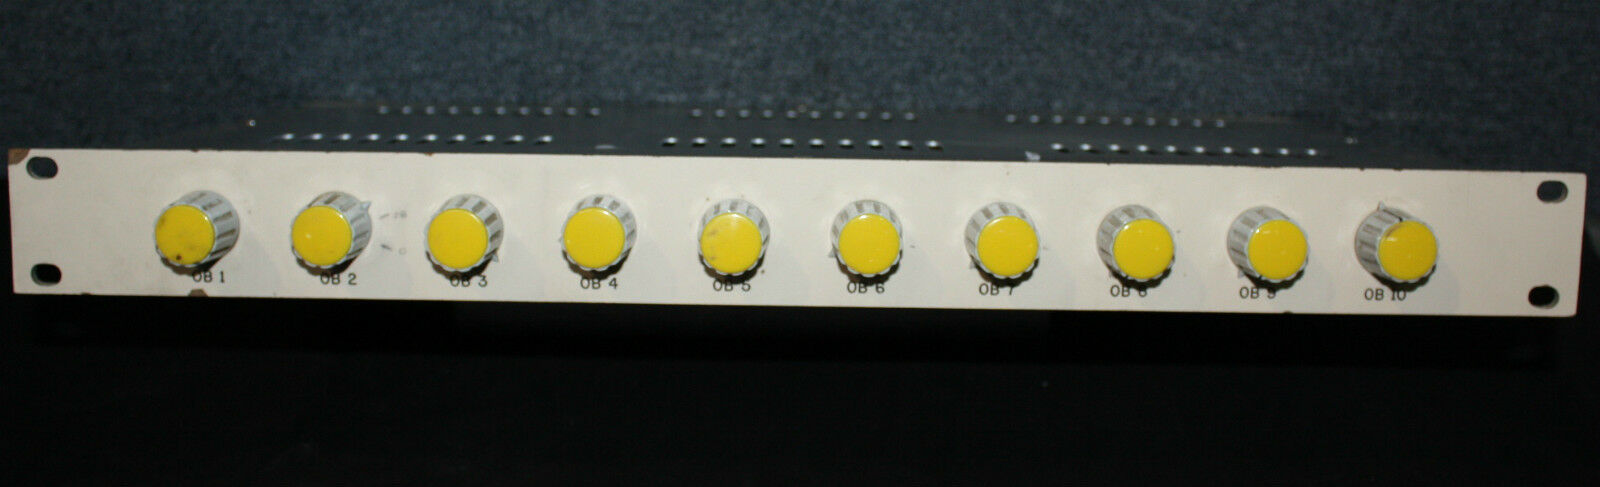 Rack Mount Unit, Probablly a Splitter or Mixer for IFB Applications